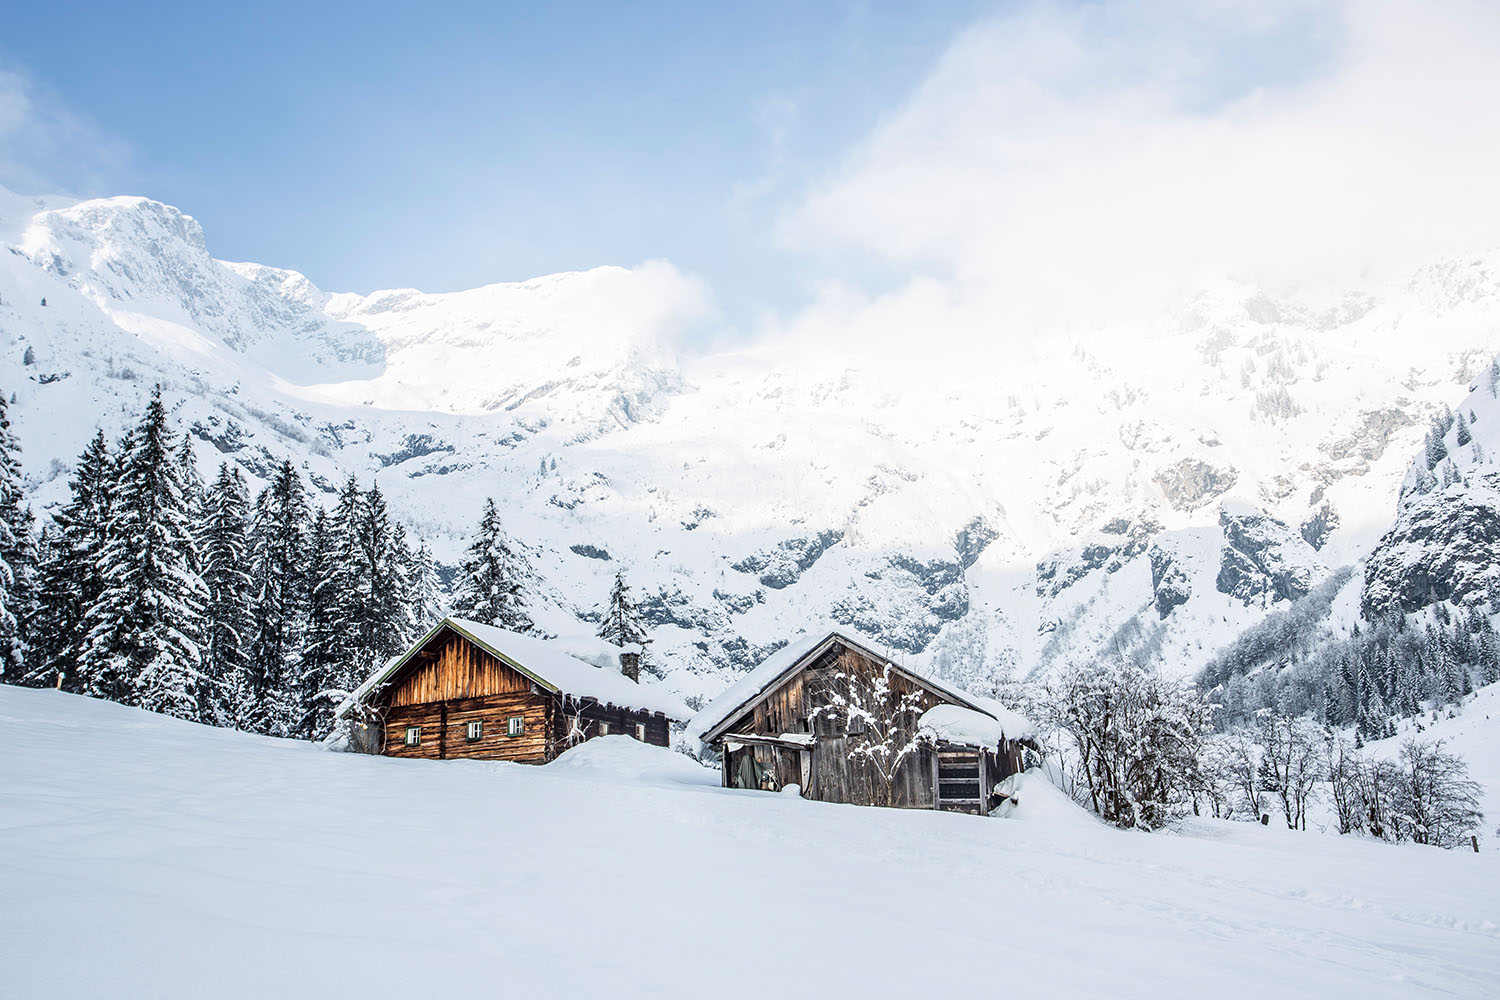 Ski touring and snowshoeing in Salzburg during the winter months